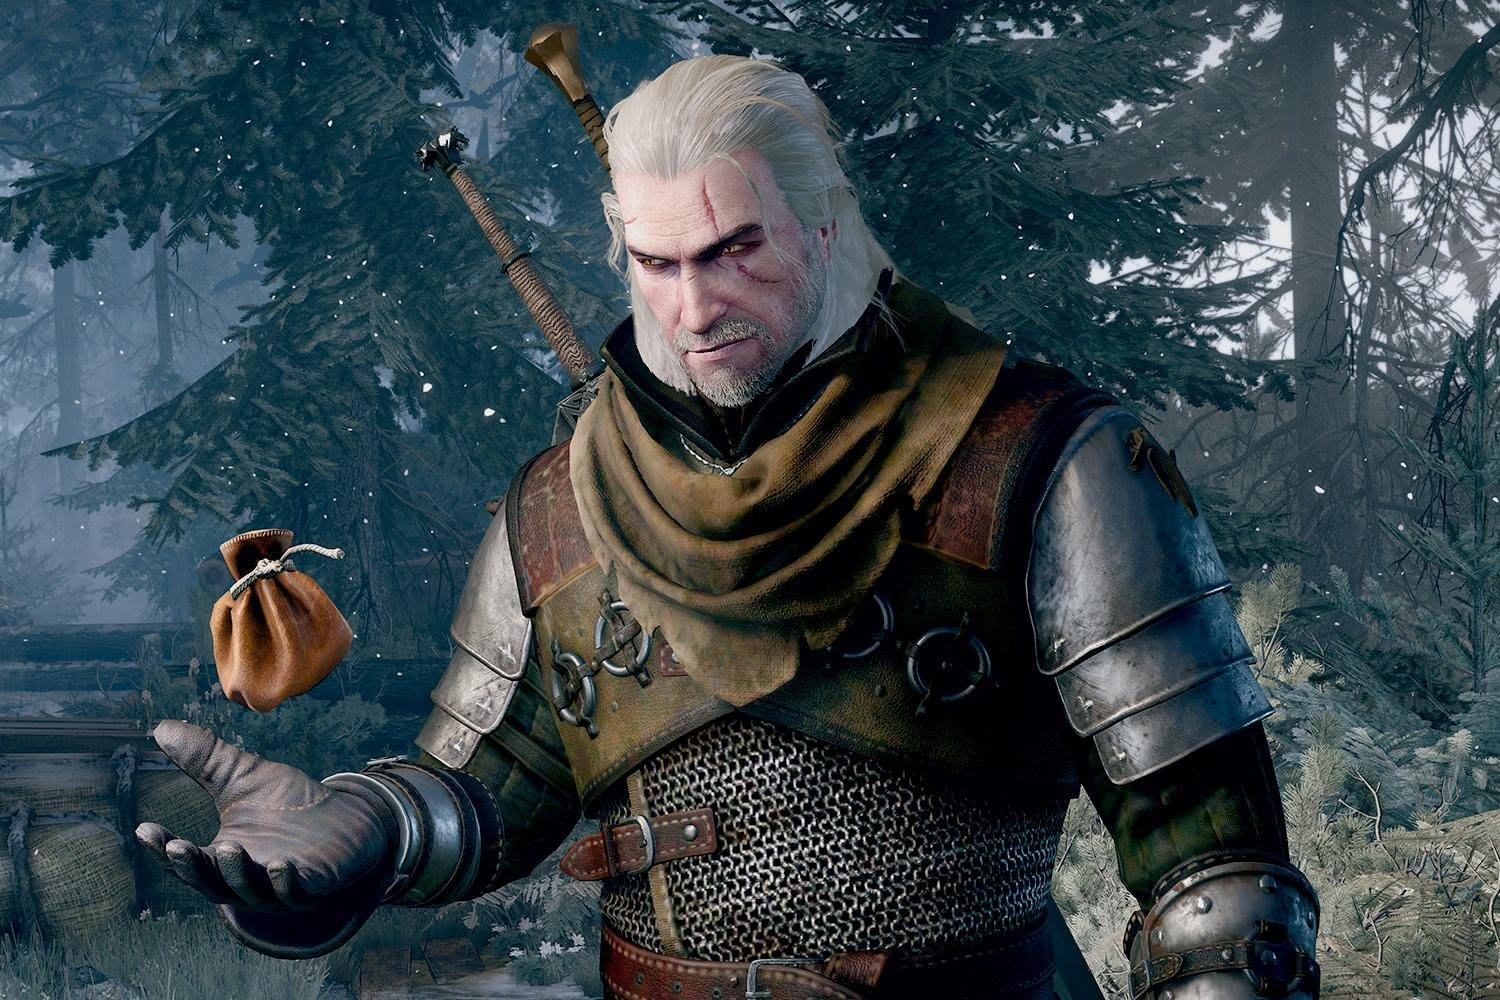 The Witcher 3 Guide and tips